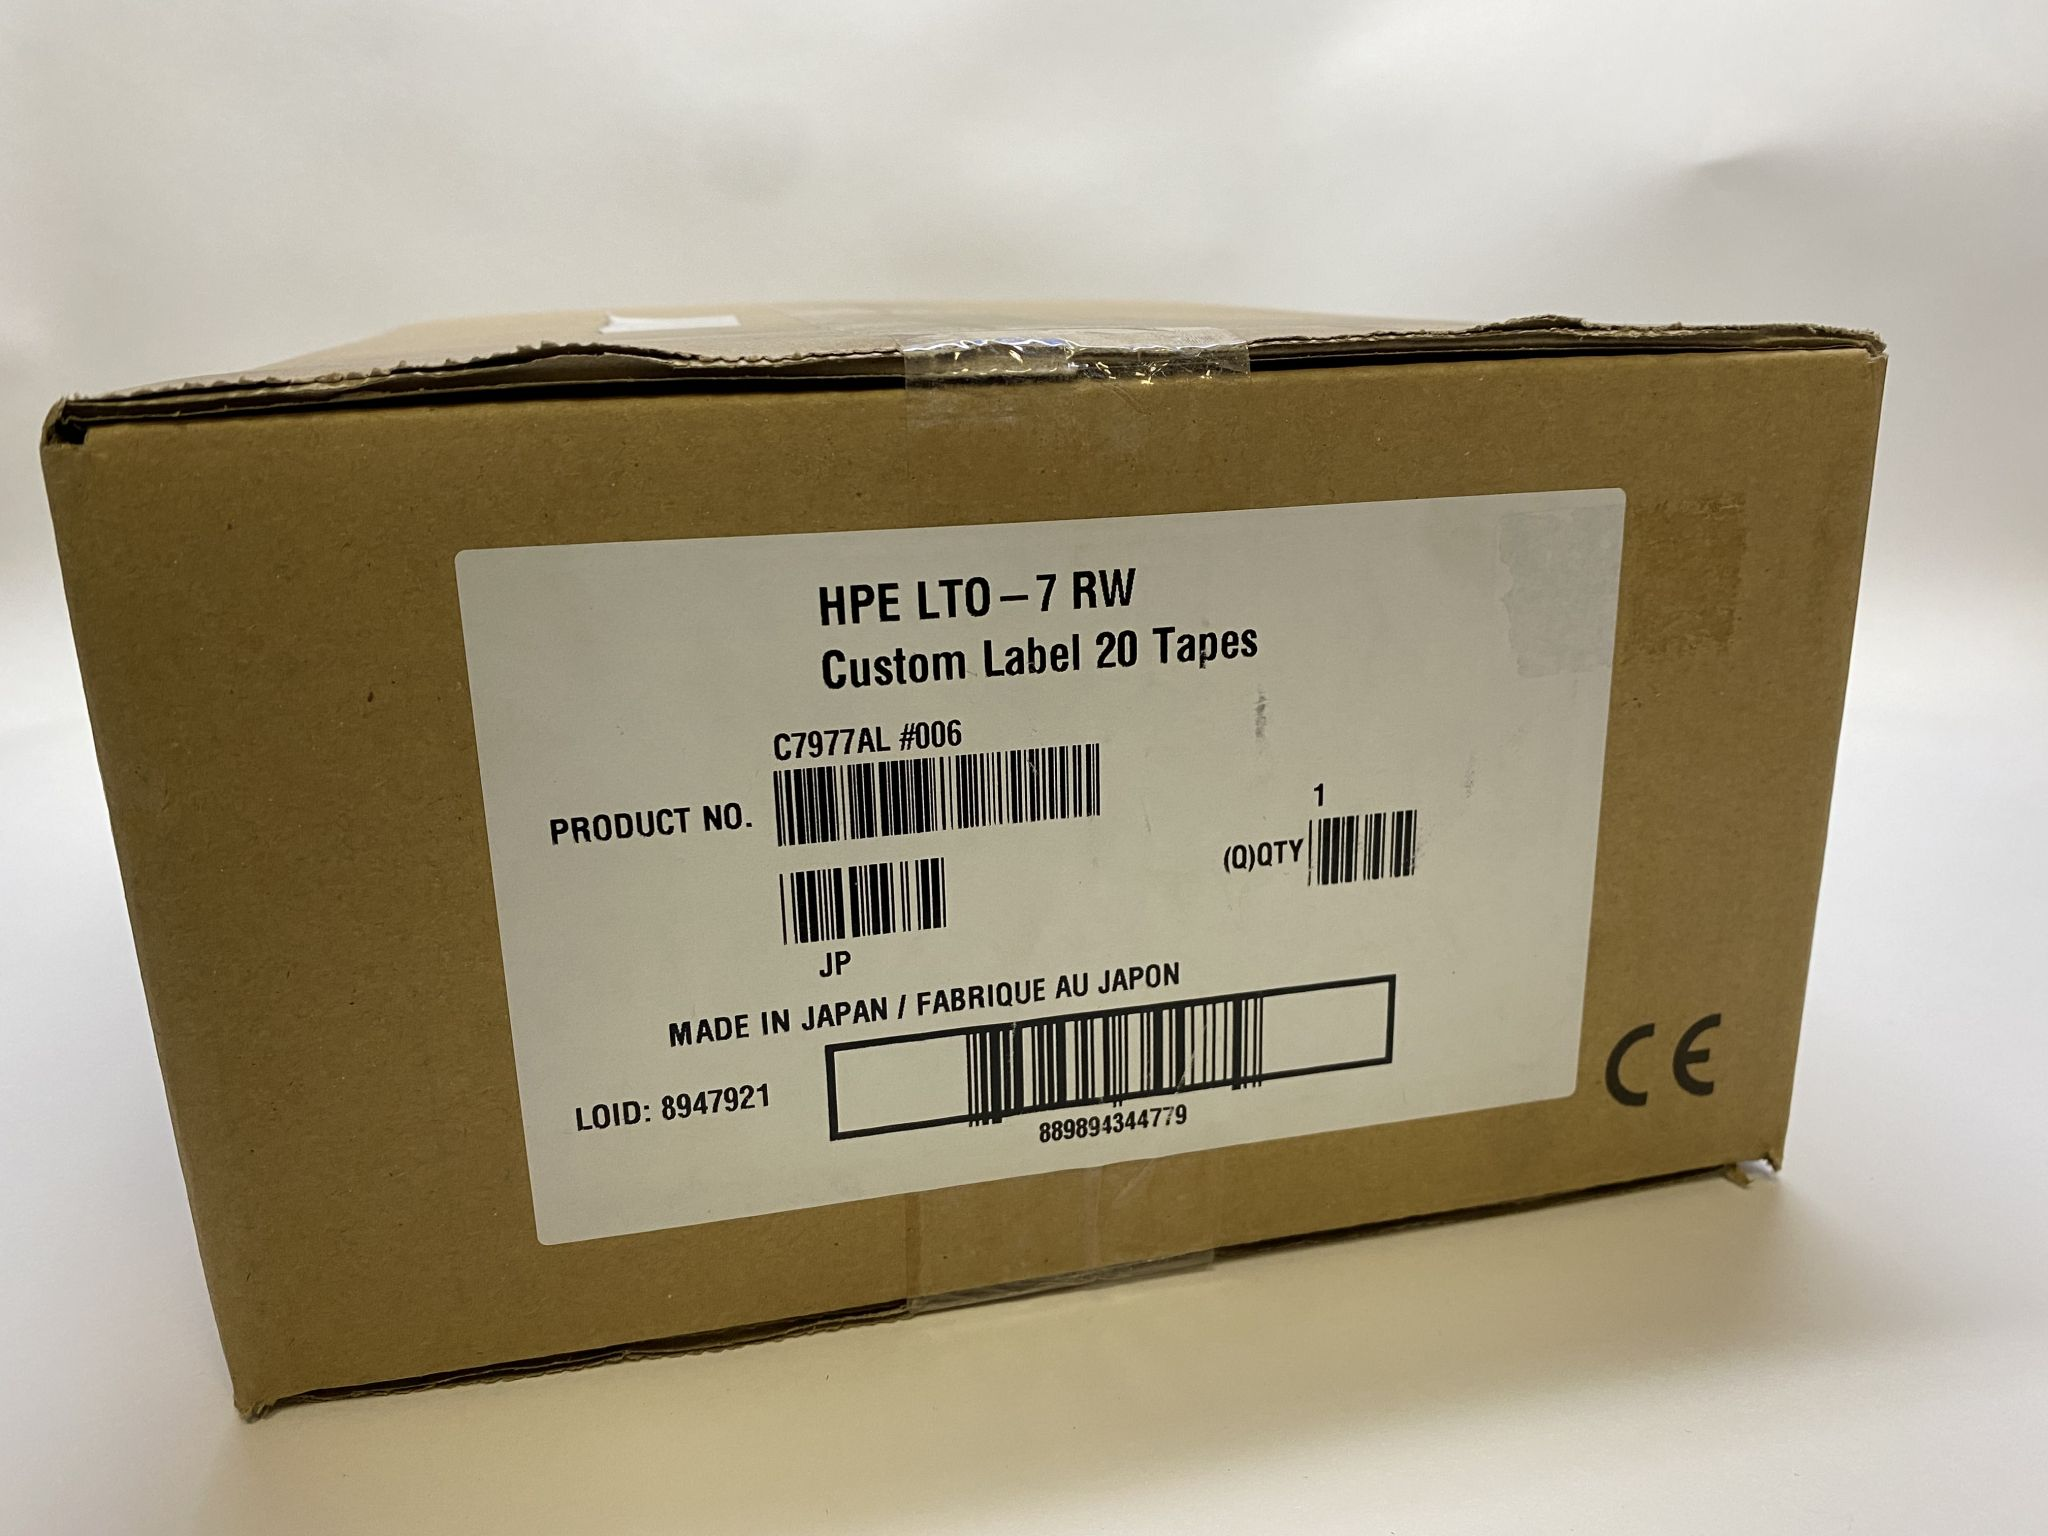 HPE C7977AL, LTO-7 RW Custom Label 20 Tapes